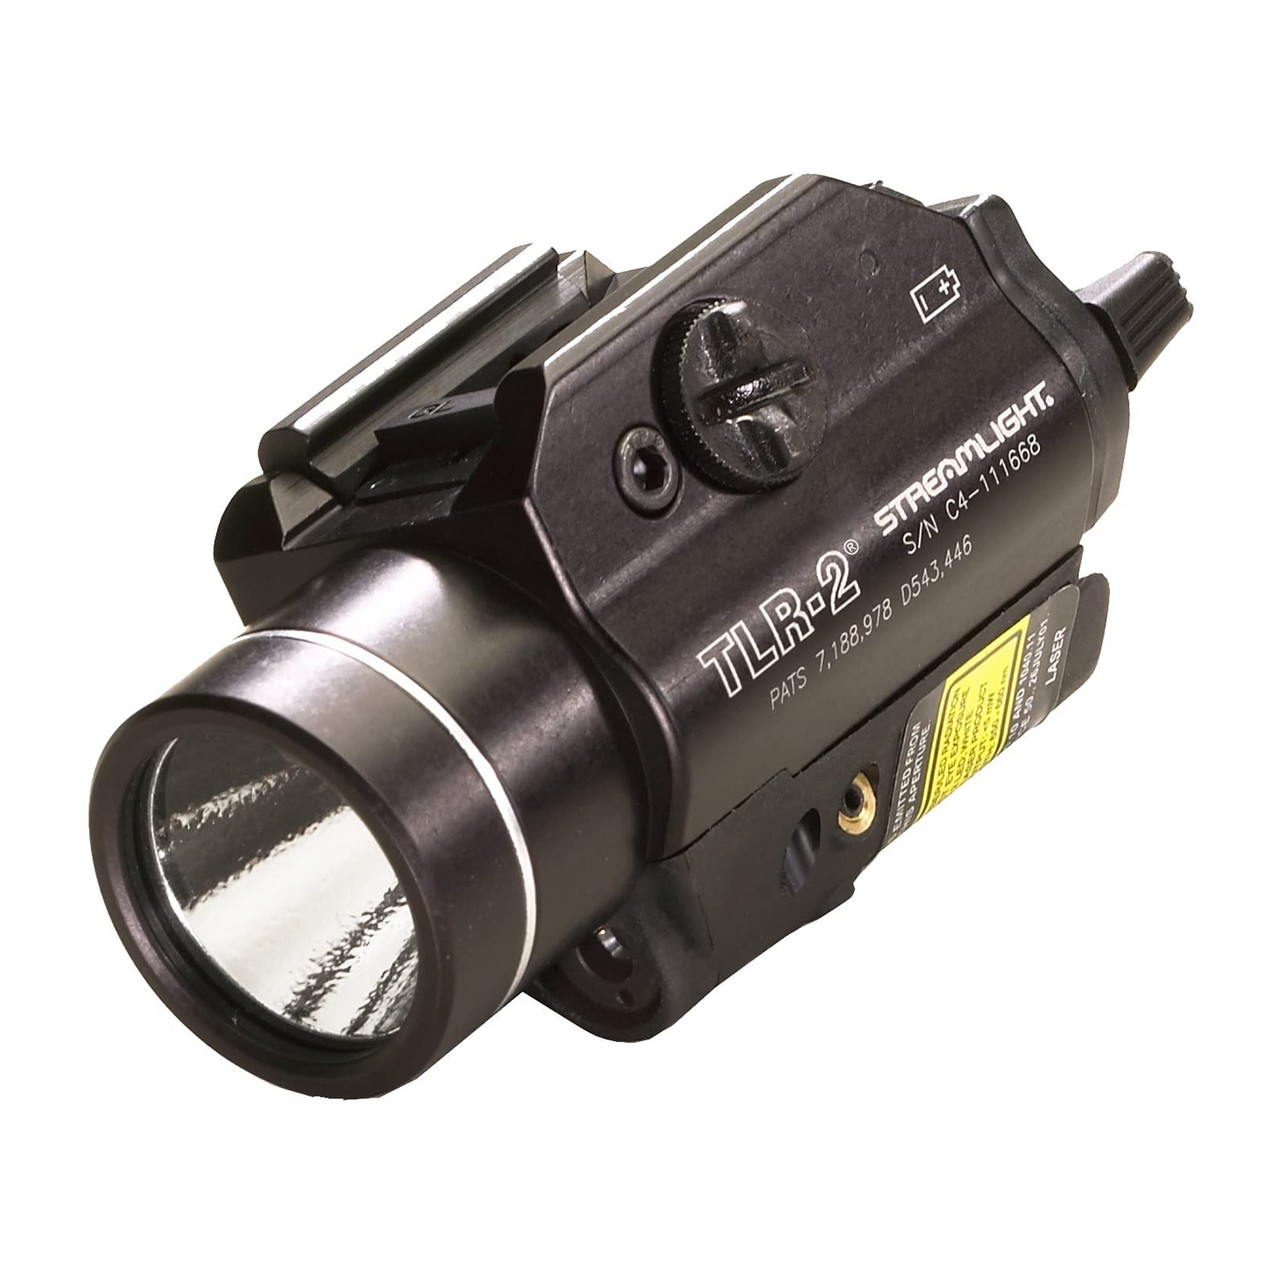 55815 STREAMLIGHT TLR-2 C4 LED RAIL MOUNTED WEAPON FLASHLIGHT WITH LASER SIGHT